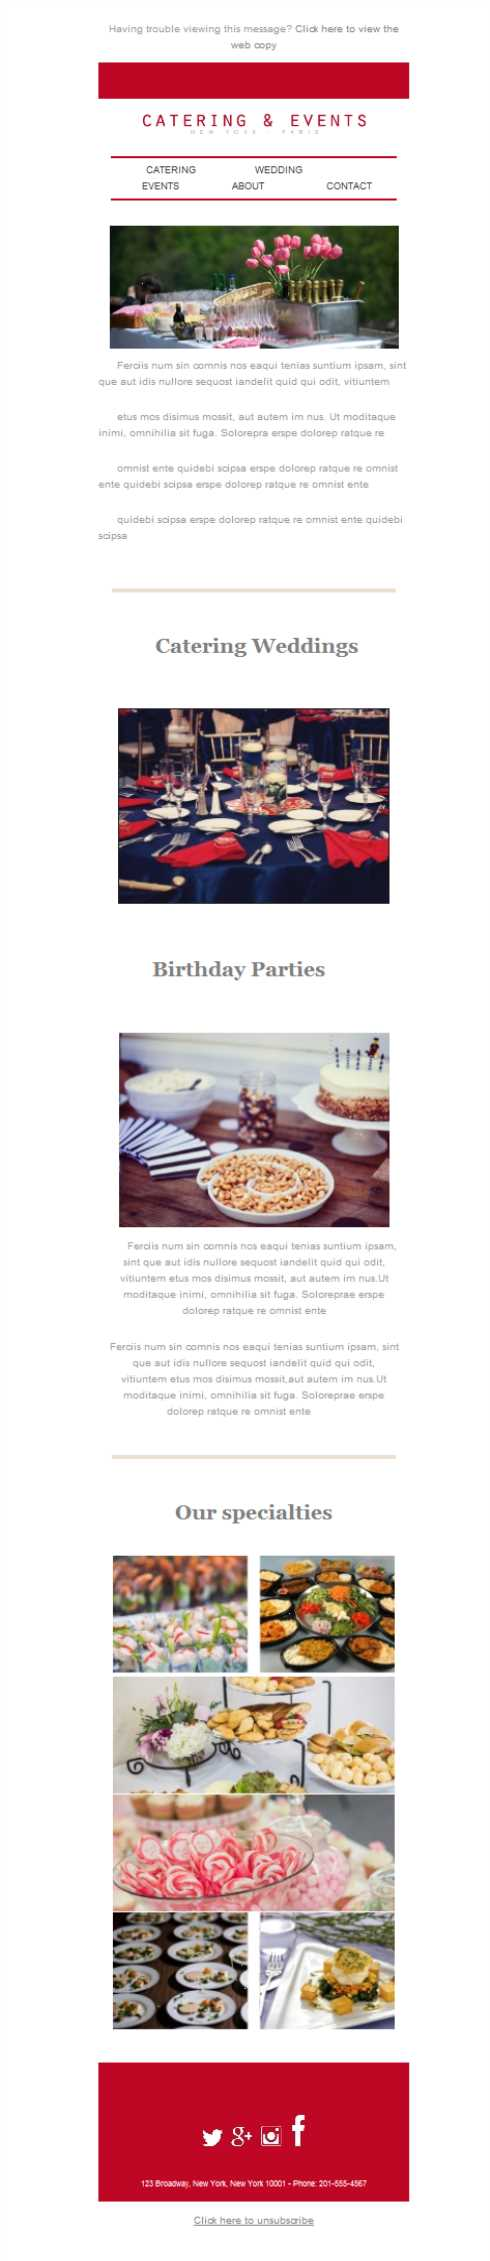 Free email templates download design catering events for Catering email template